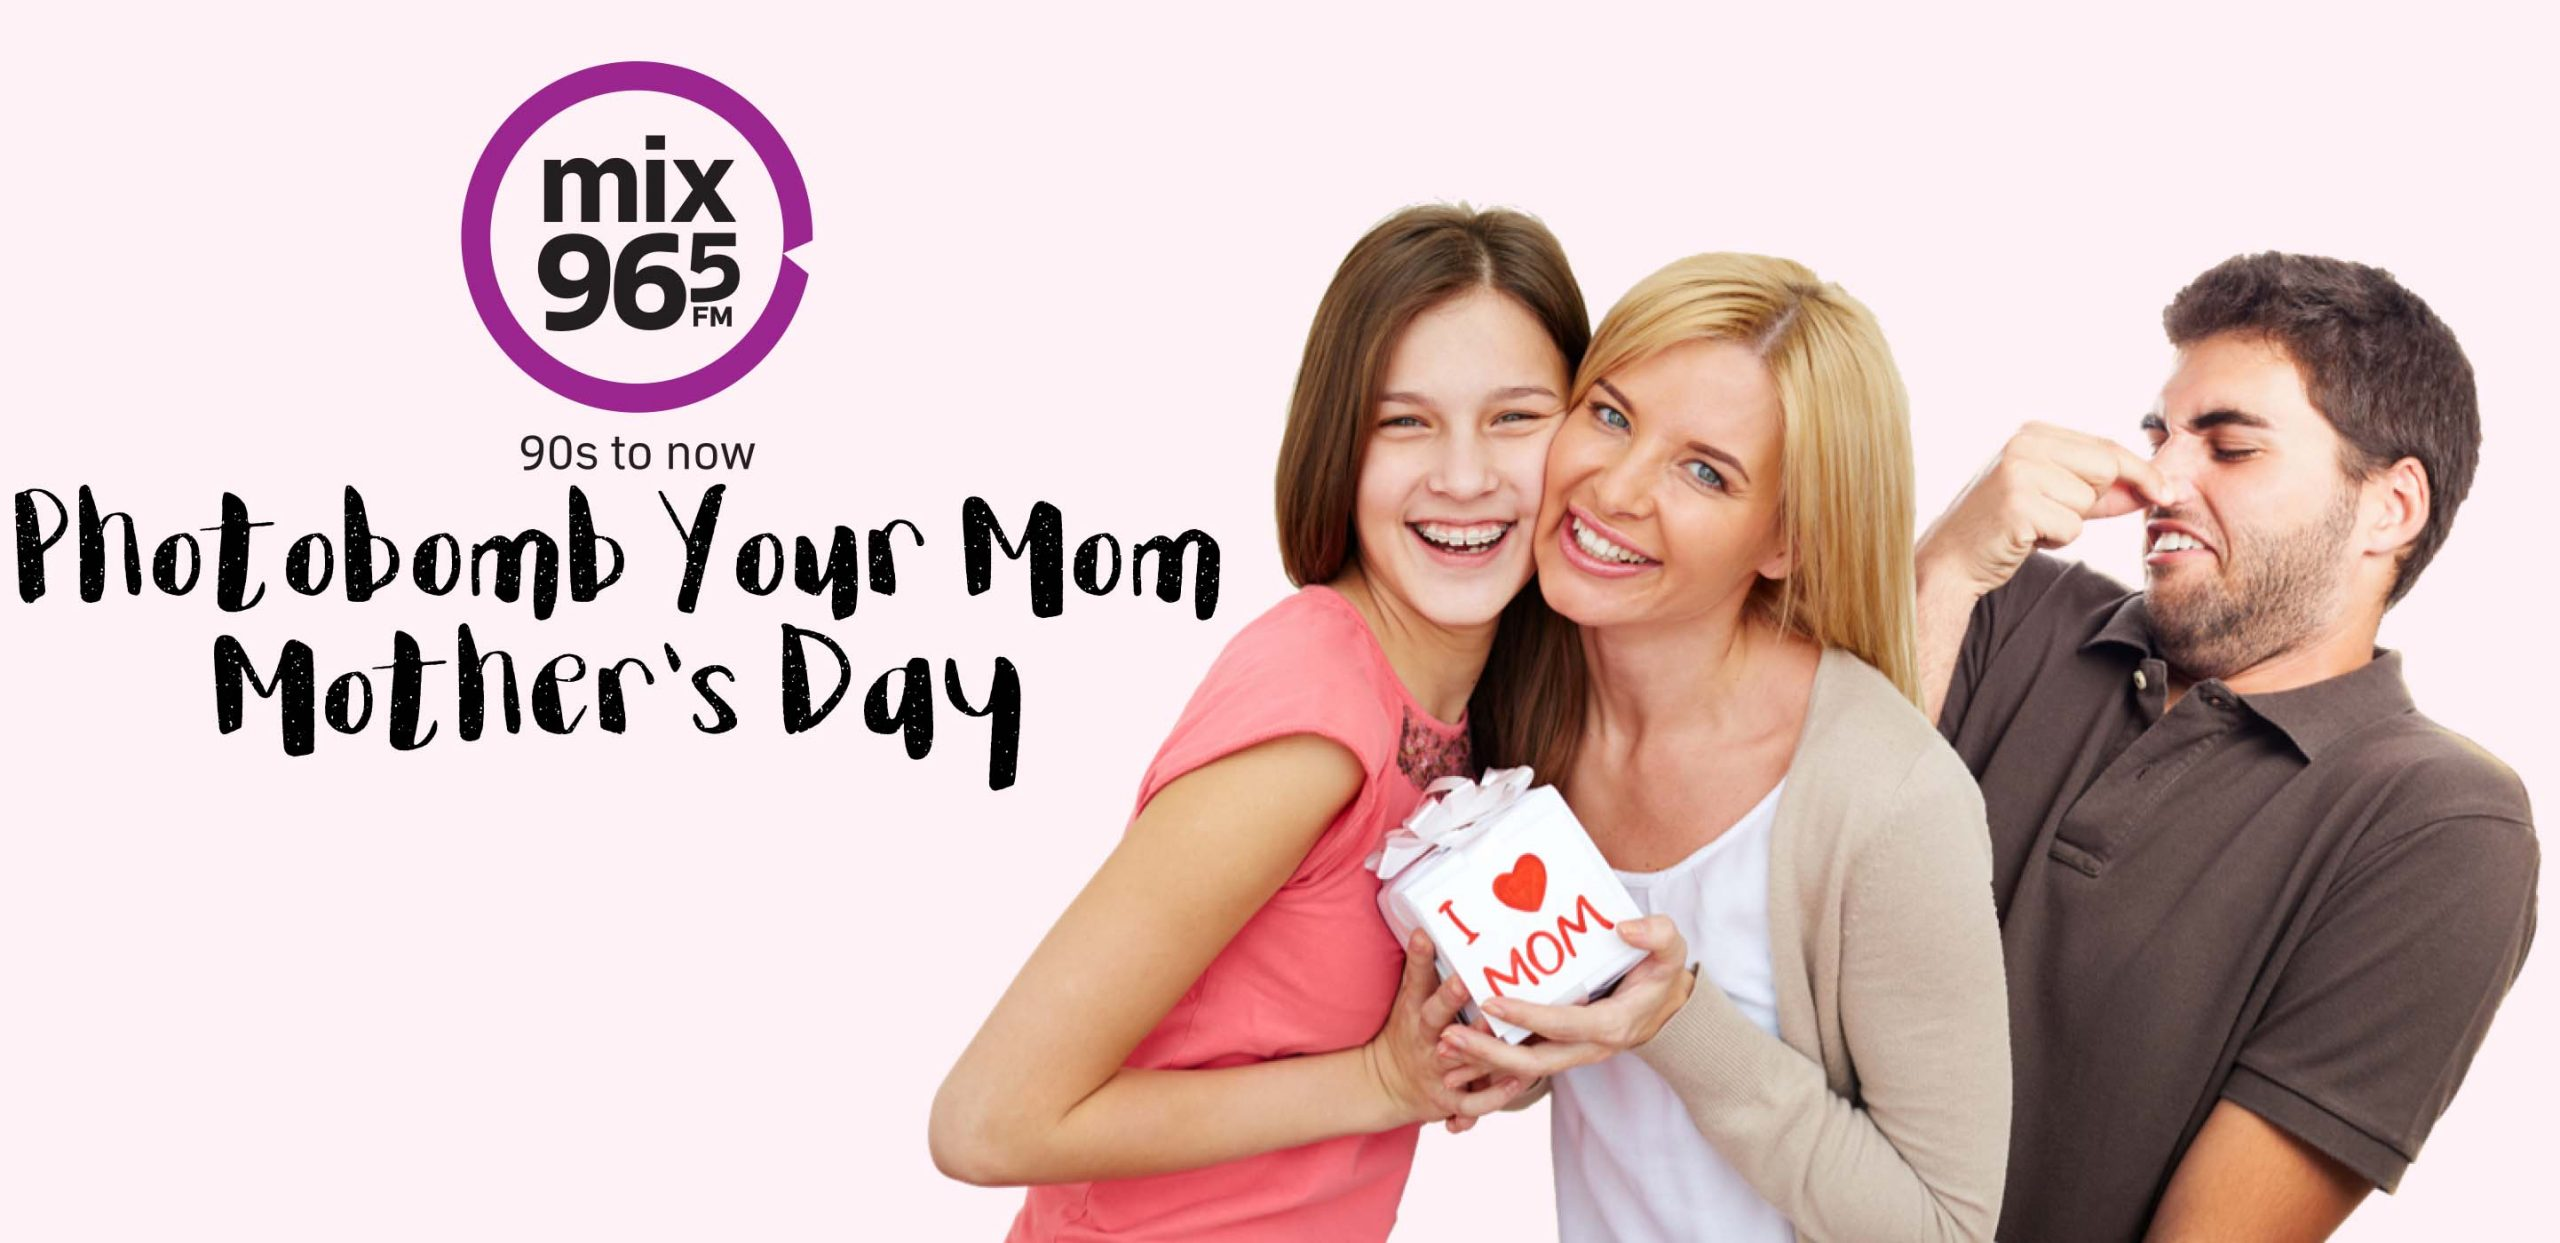 Mix 96-5'S Photobomb Your Mom For Mother's Day!